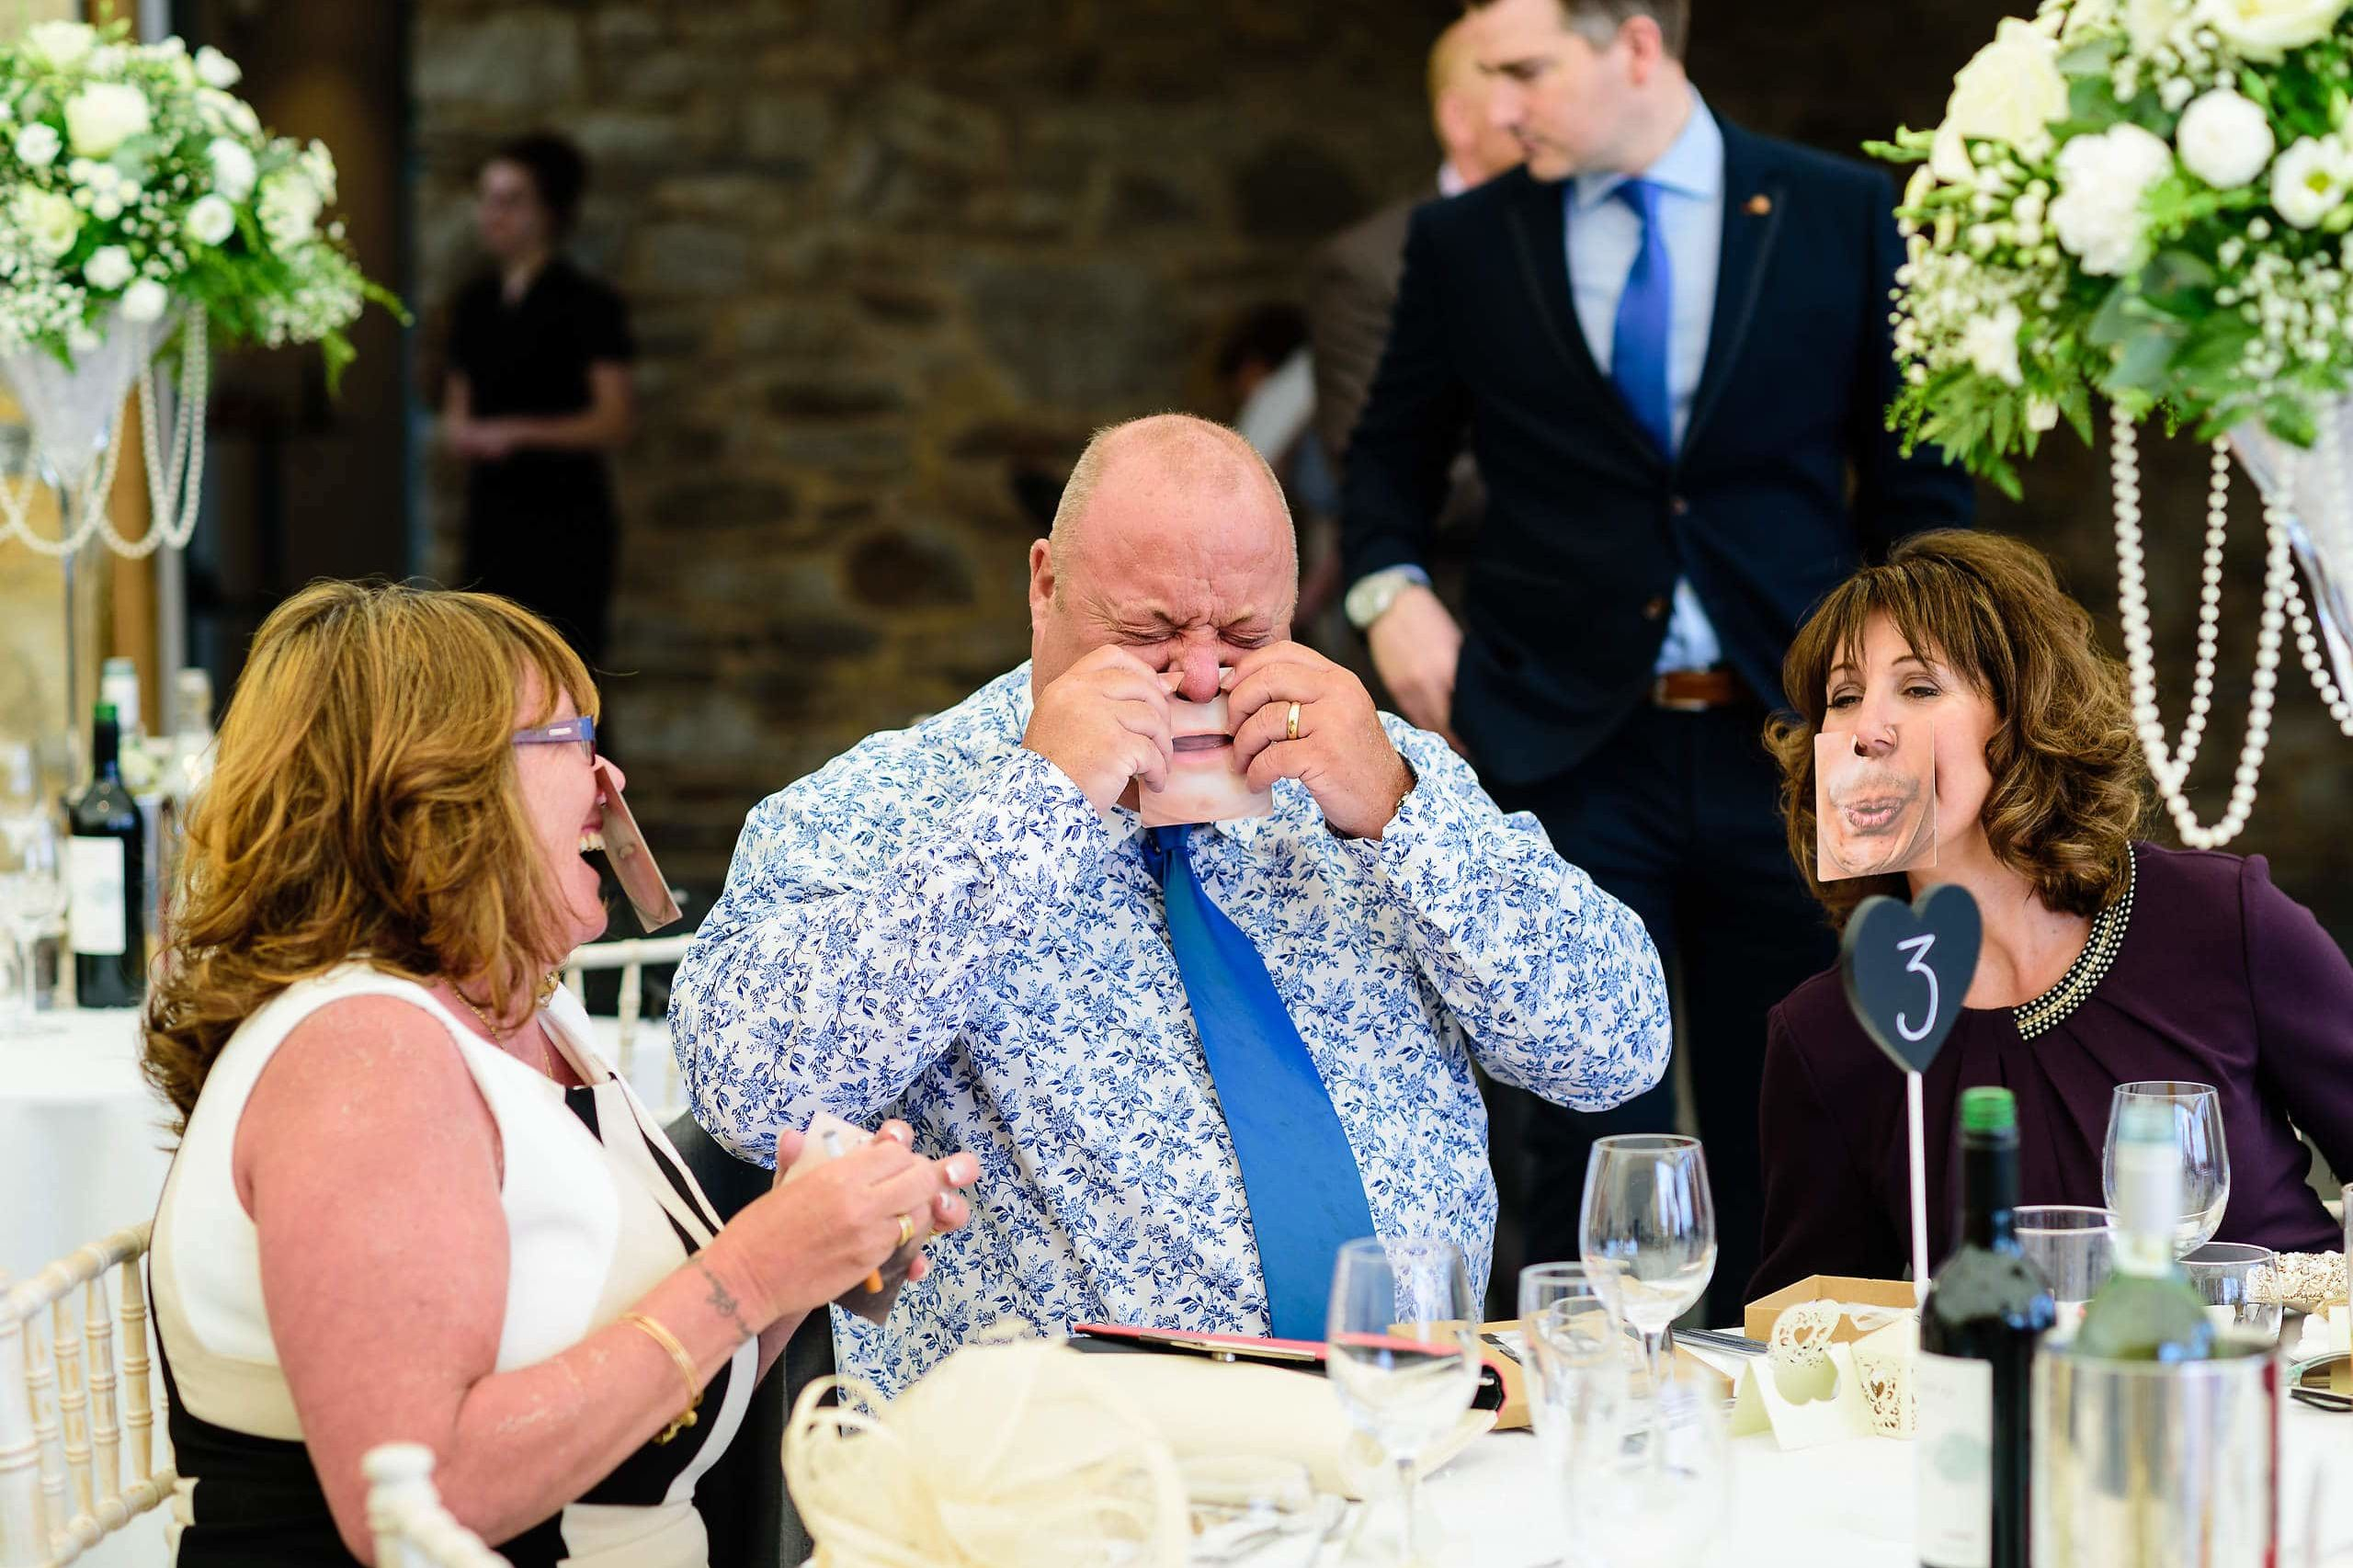 Wedding at Trevenna Barns 2